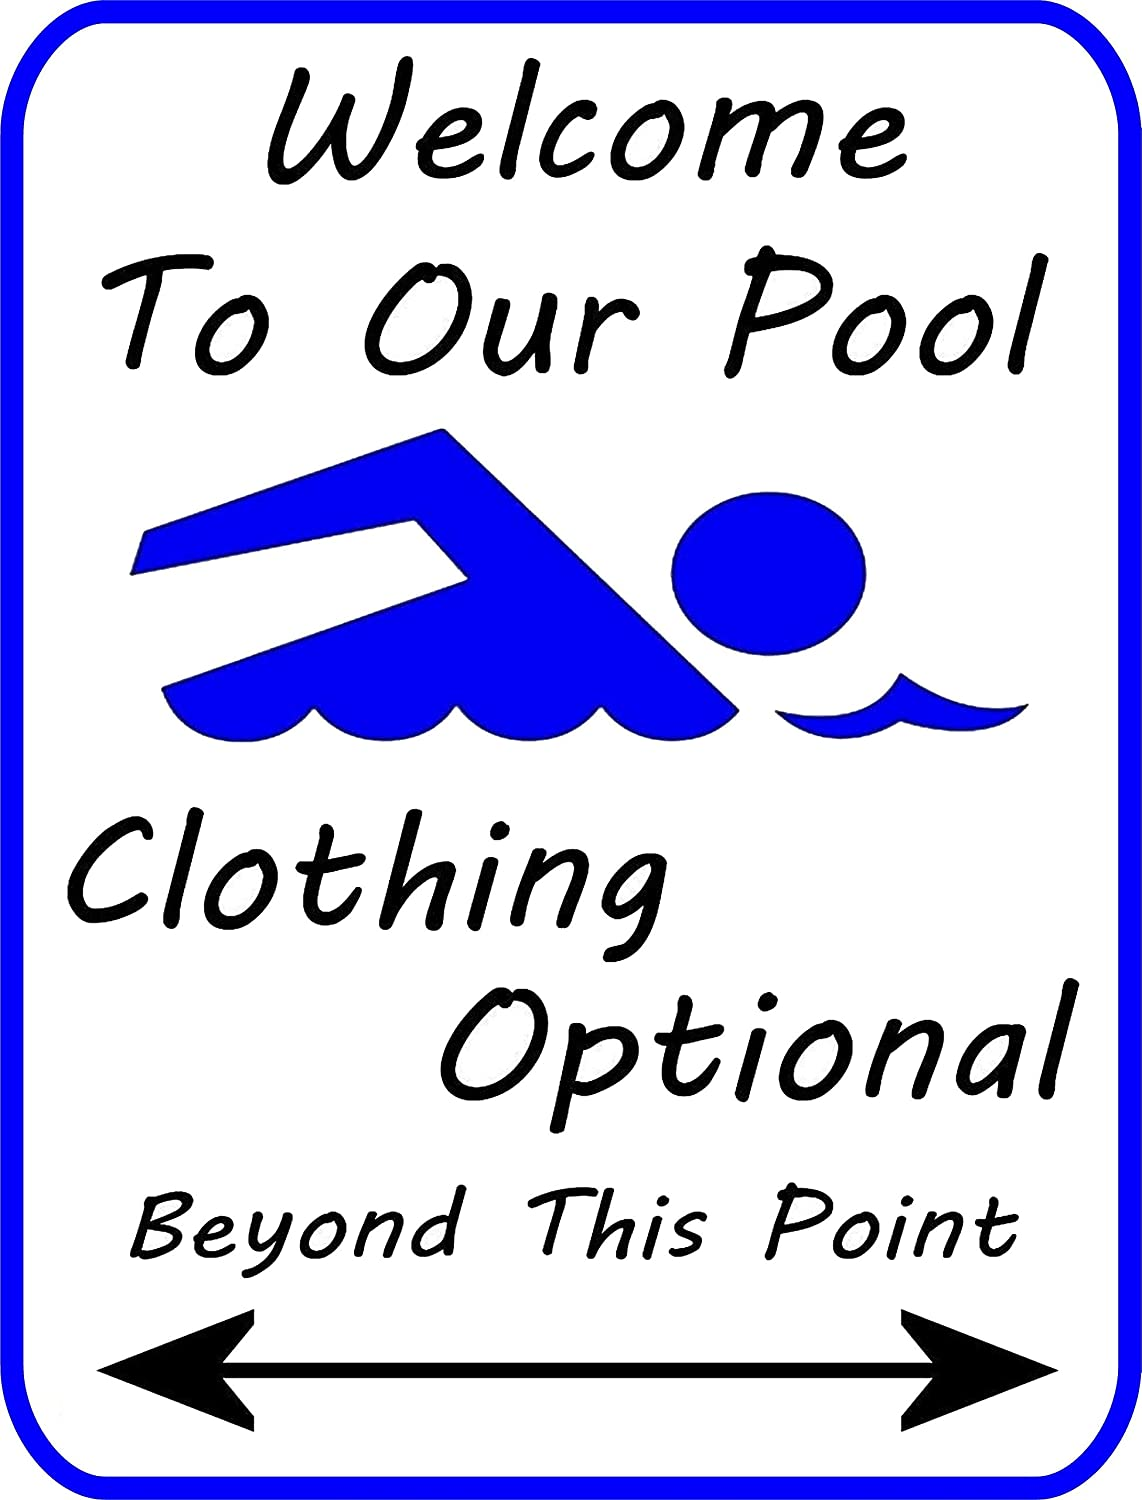 Top Shelf Novelties Welcome to Our Pool Clothing Optional Beyond This Point Laminated Pool Sign sp1682